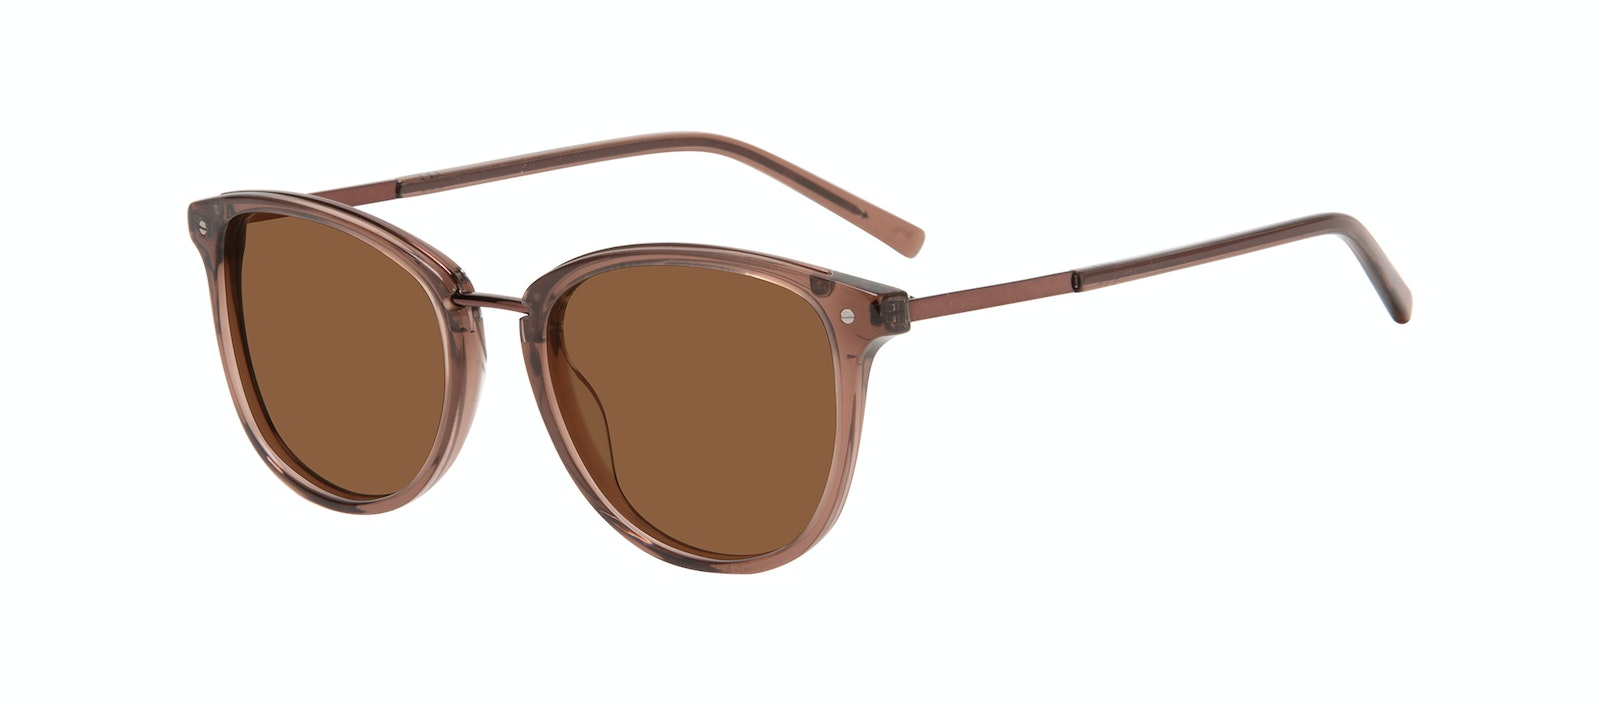 Affordable Fashion Glasses Square Round Sunglasses Women Bella Terra Tilt